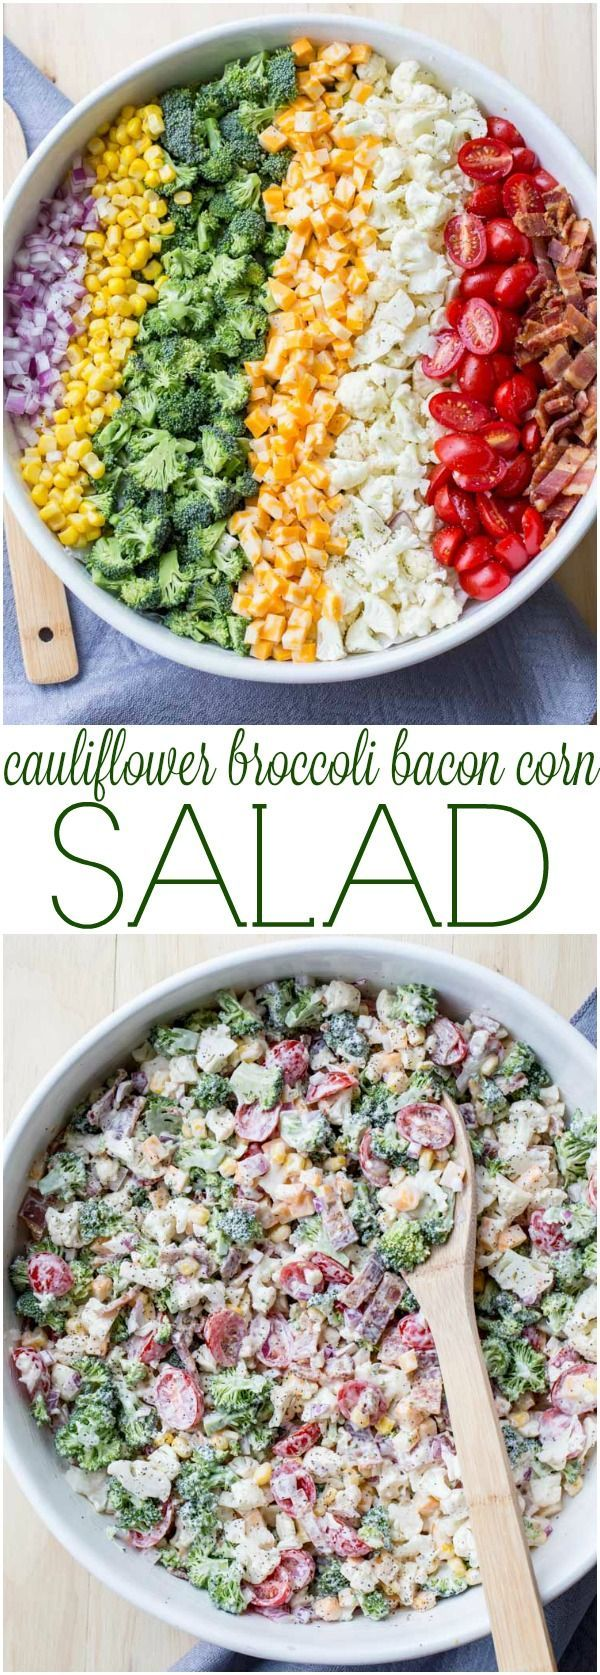 Cauliflower Broccoli Bacon Tomato Corn Salad Recipe